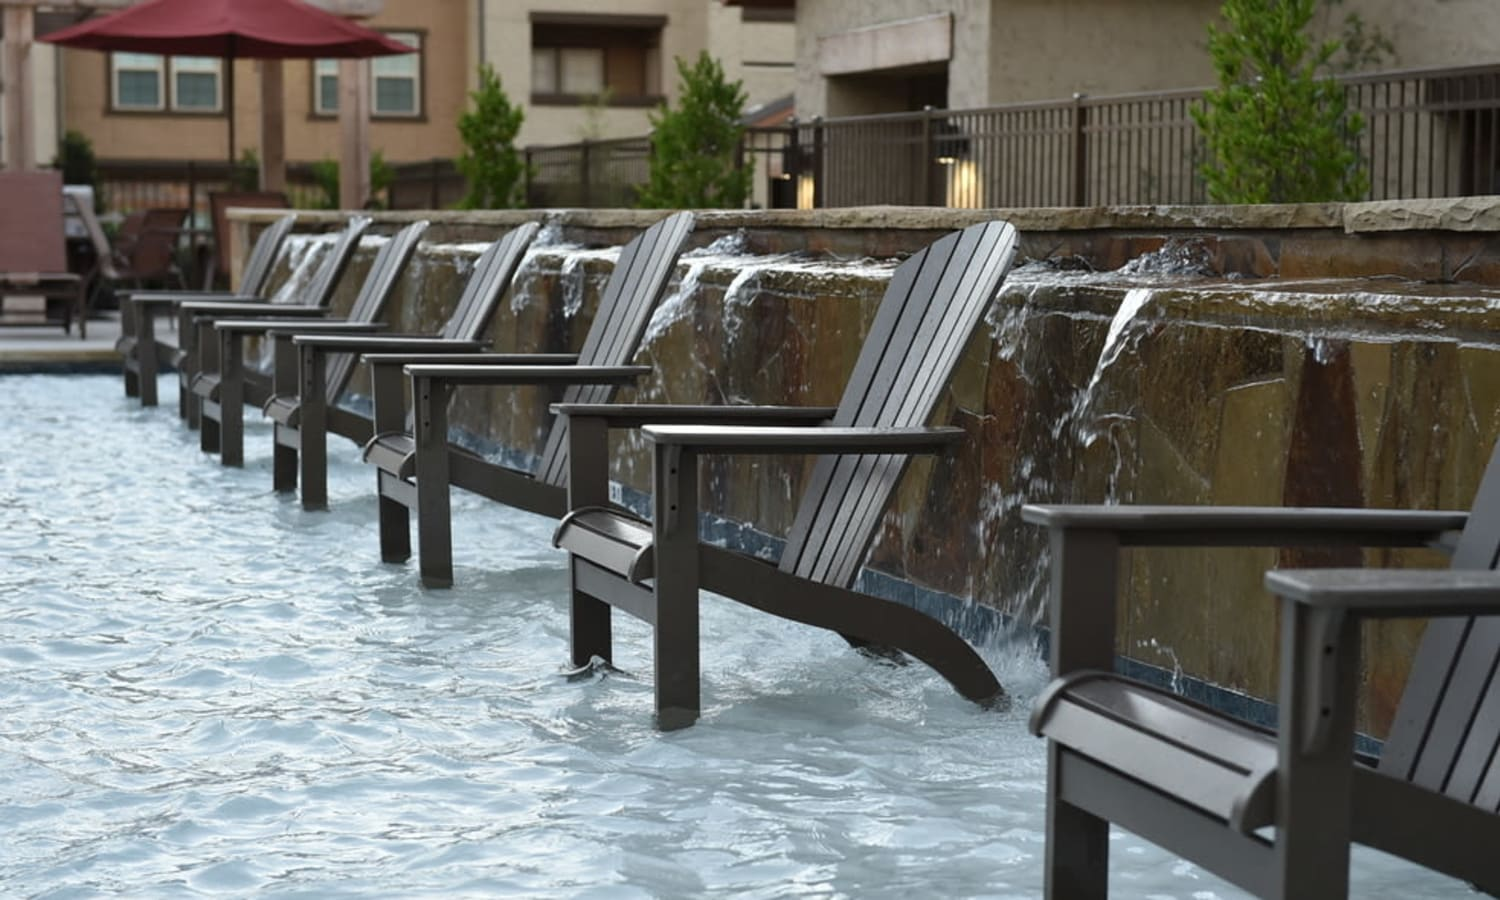 A row of chairs in water by the pool at Overlook Ranch in Fort Worth, Texas